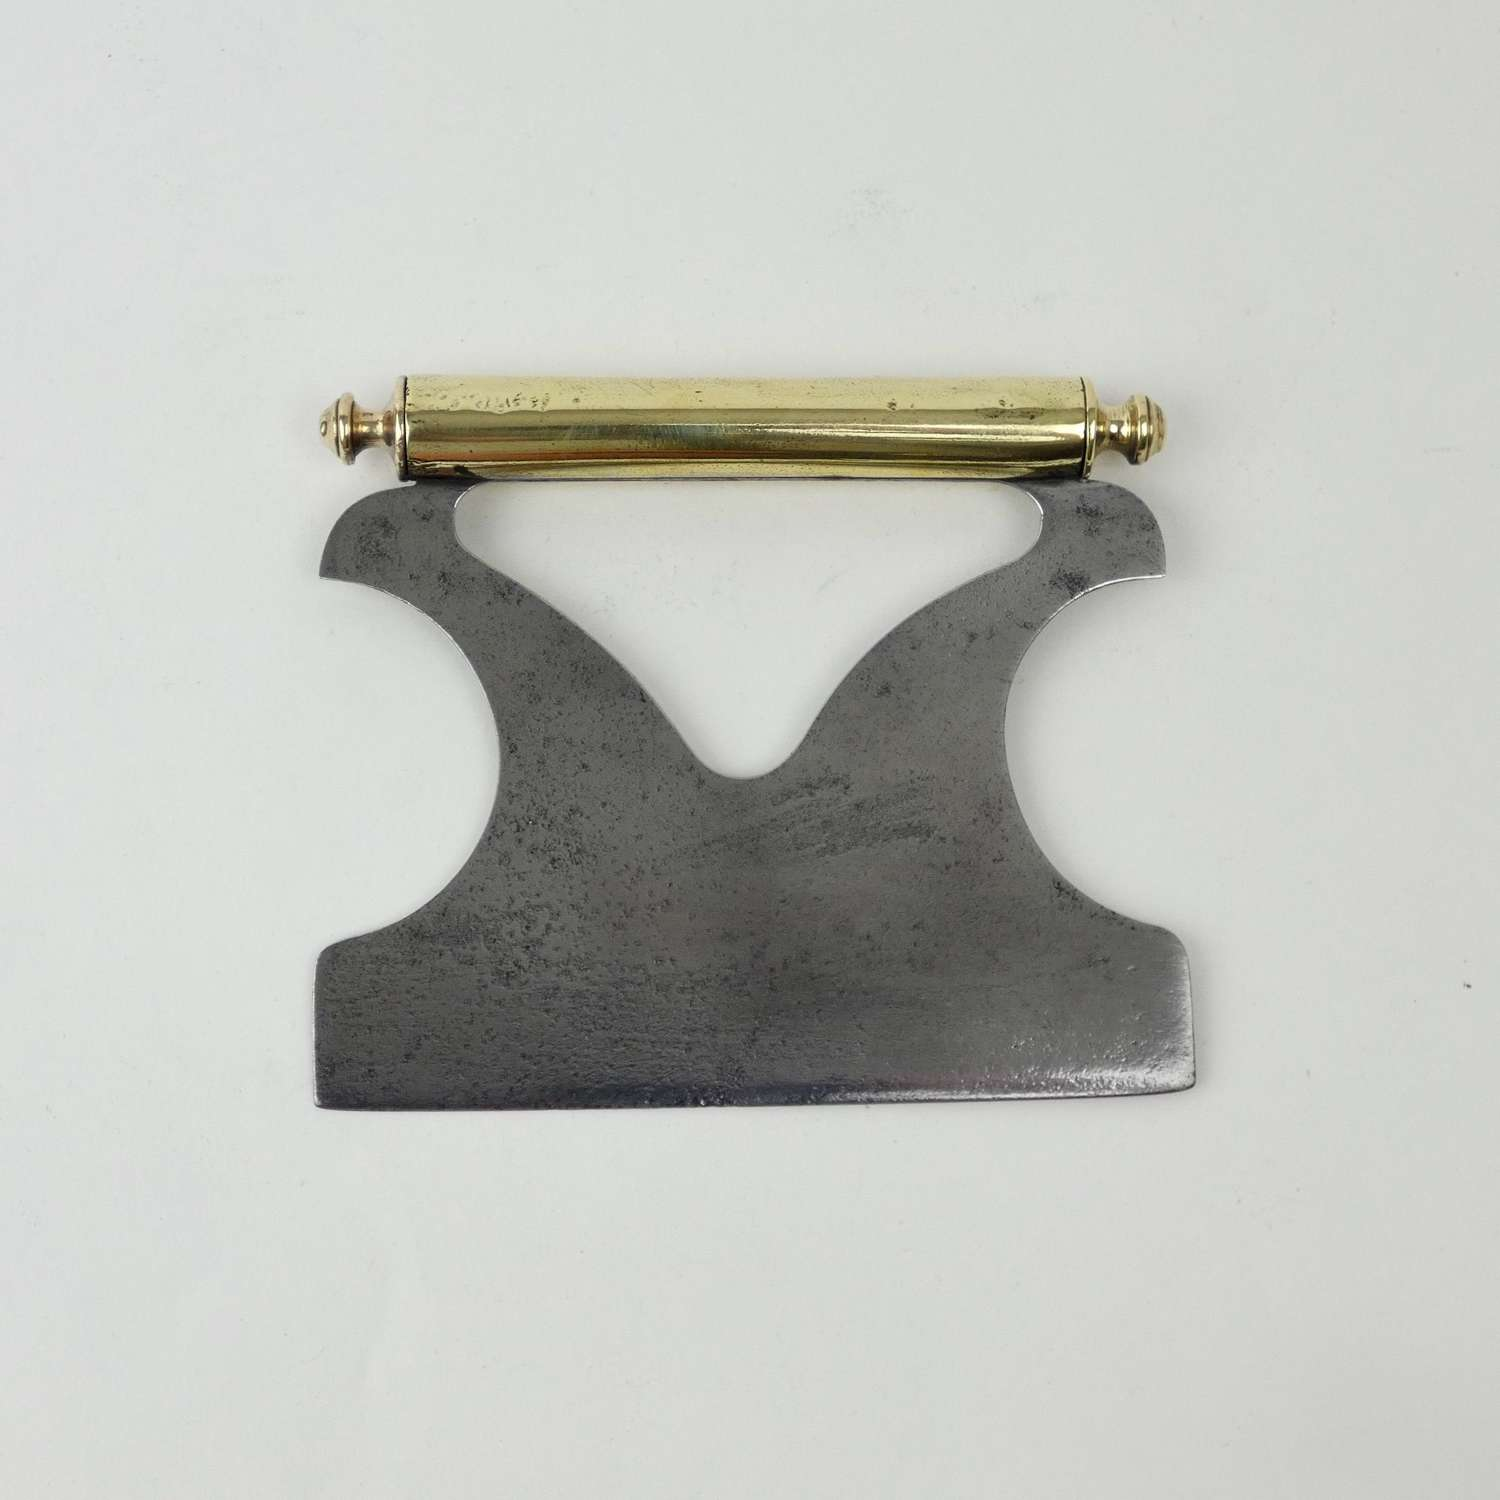 Steel herb chopper with brass handle